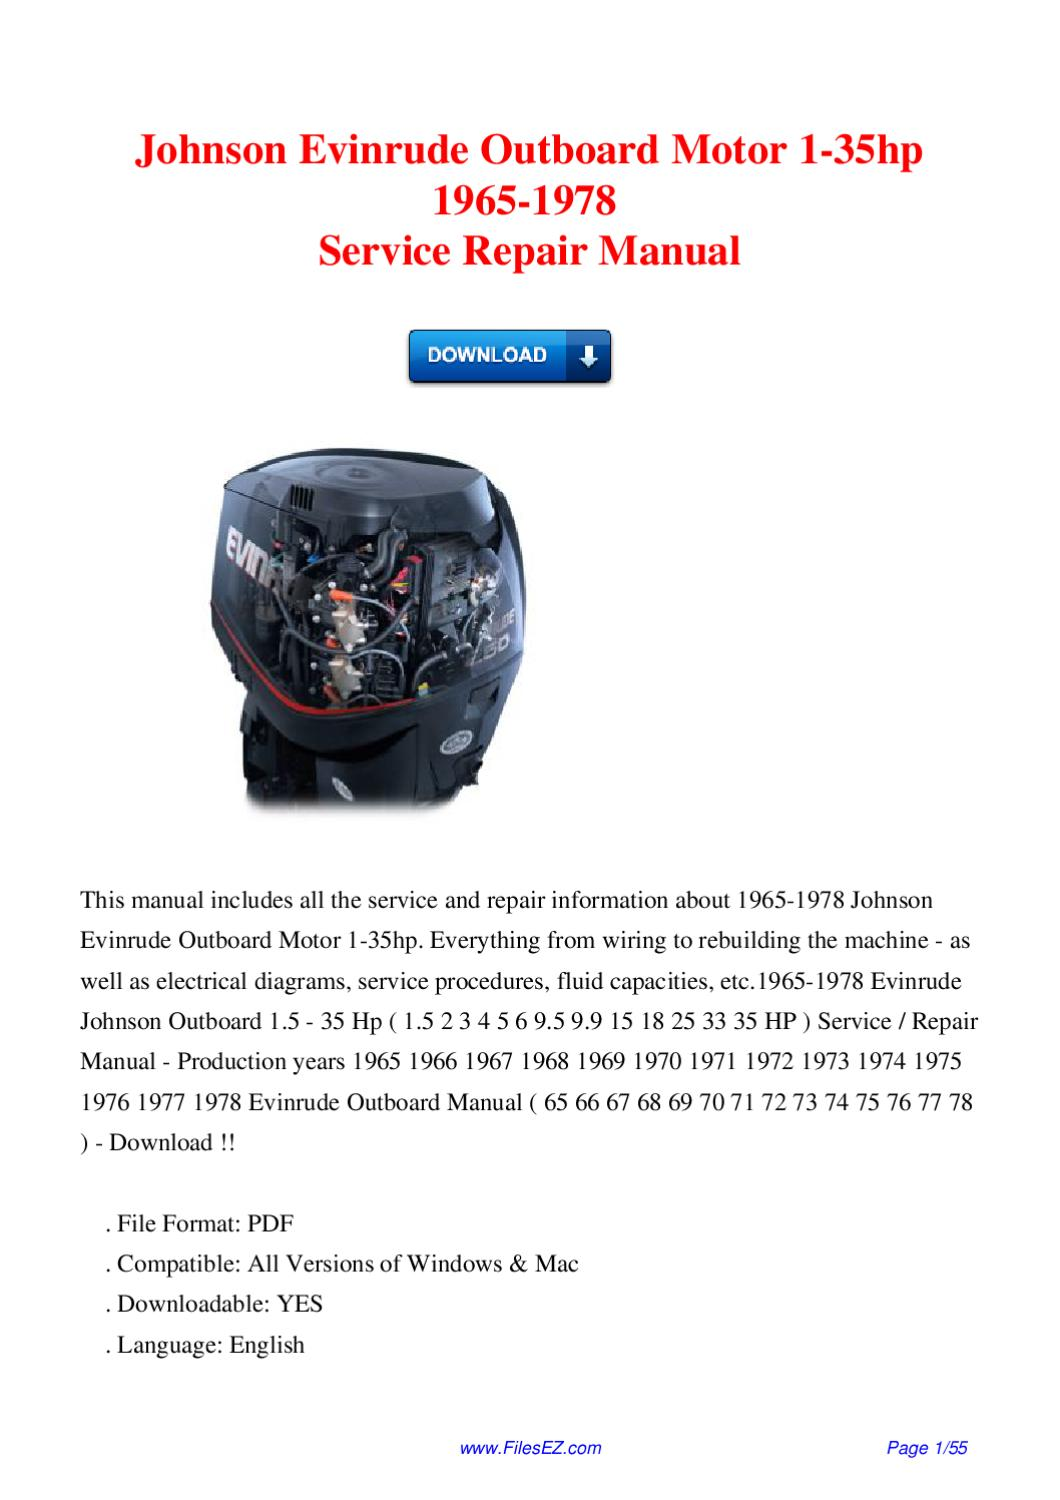 Johnson Evinrude Outboard Motor 1 35hp 1965 1978 Service Repair Gilera Gp800 Injection Wiring Diagram Manual By David Wong Issuu